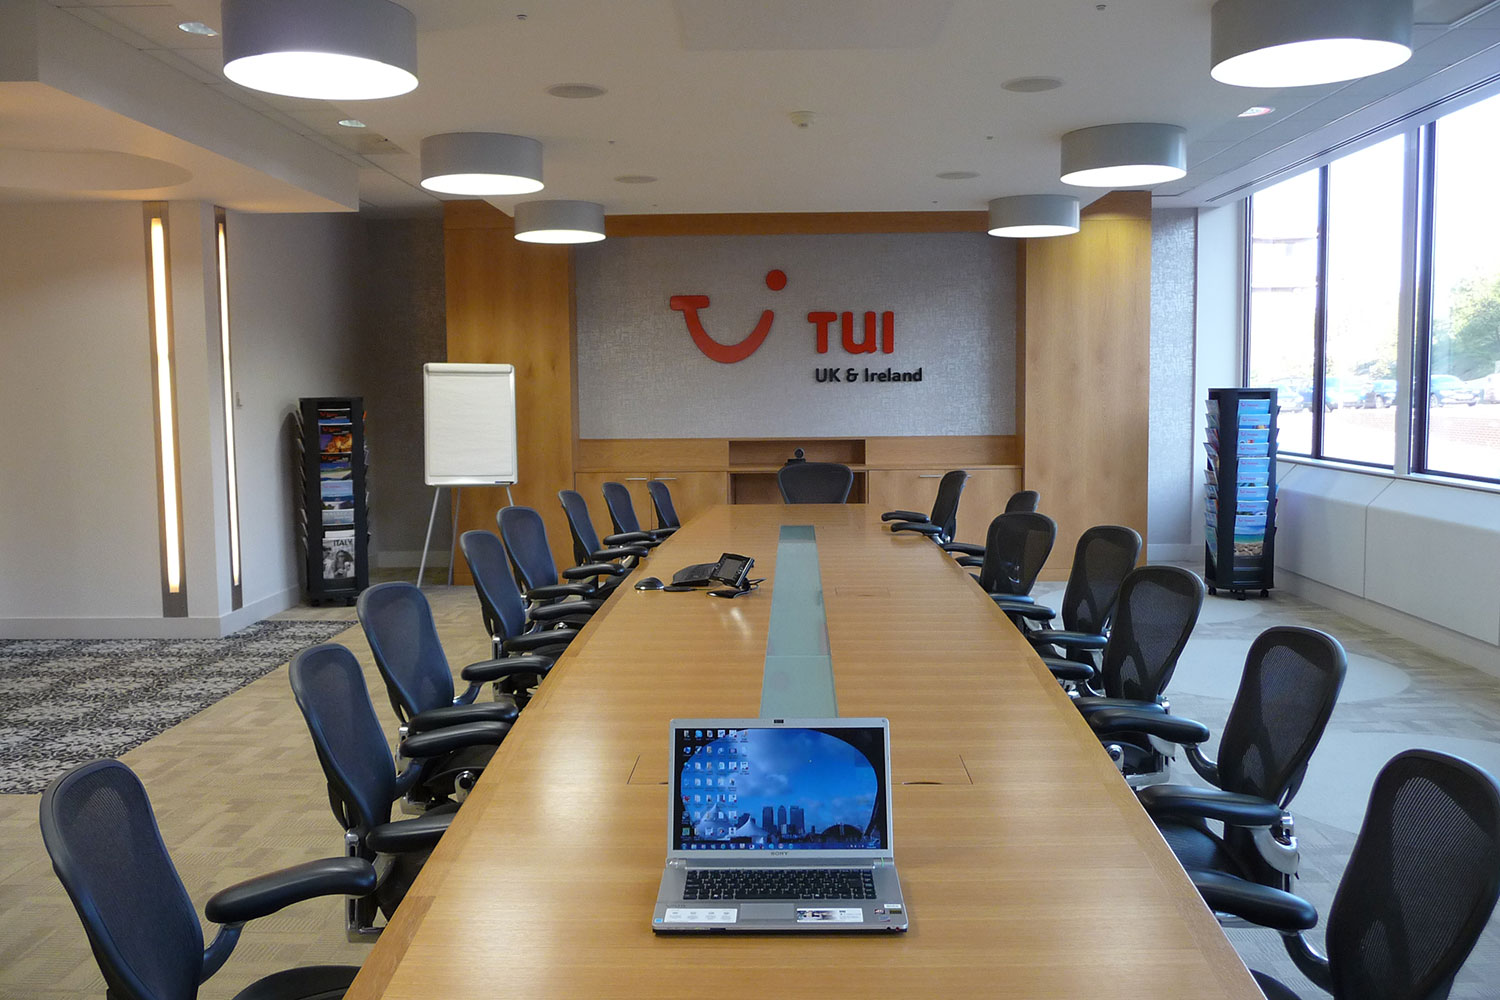 tui boardoom audiovisual